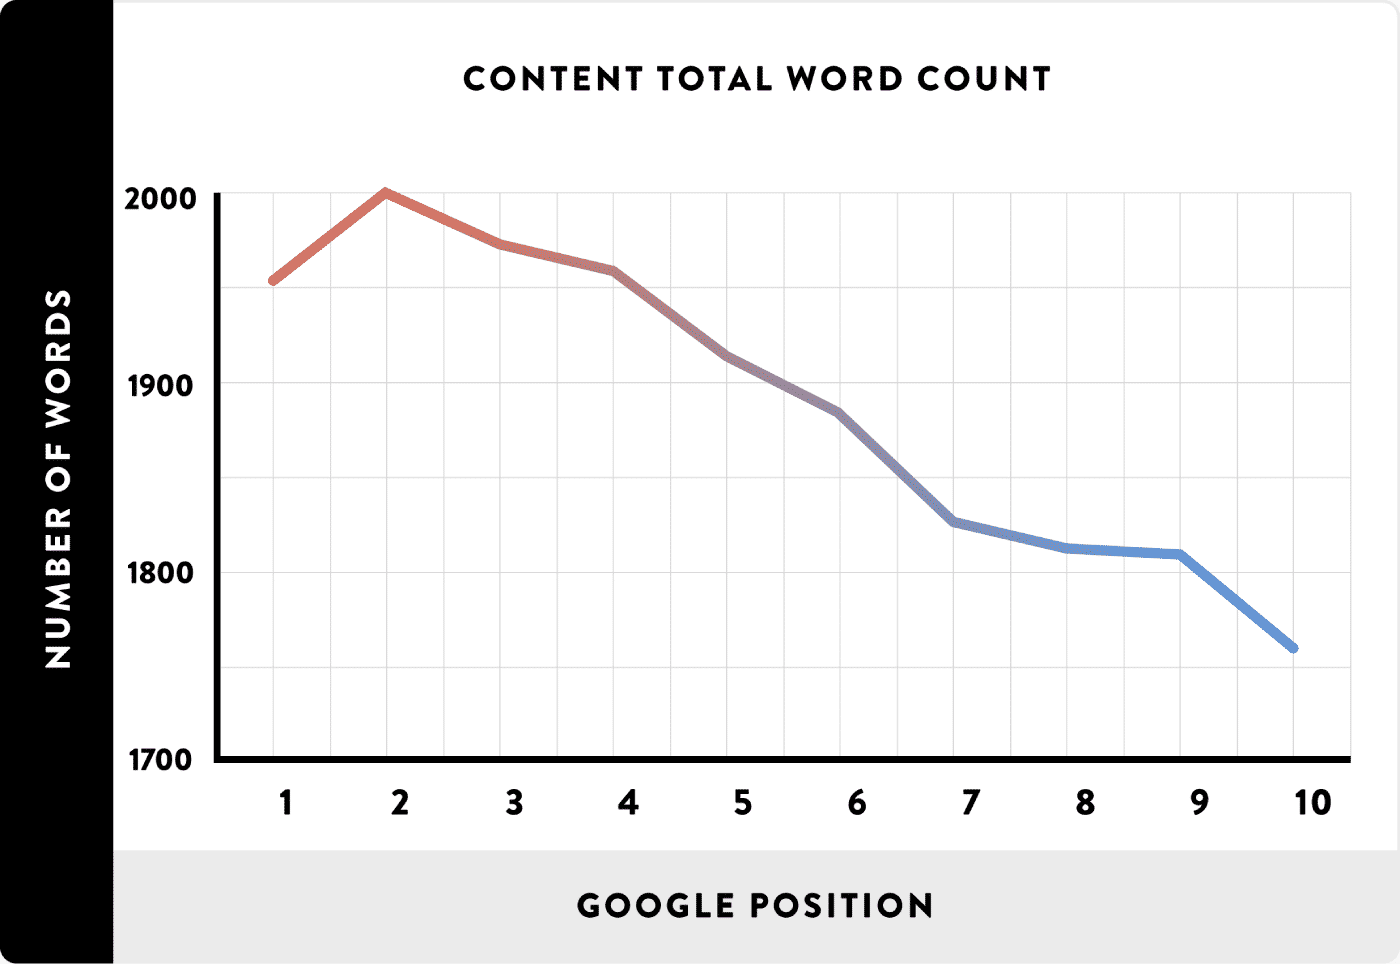 ۳_۳_content-total-word-count